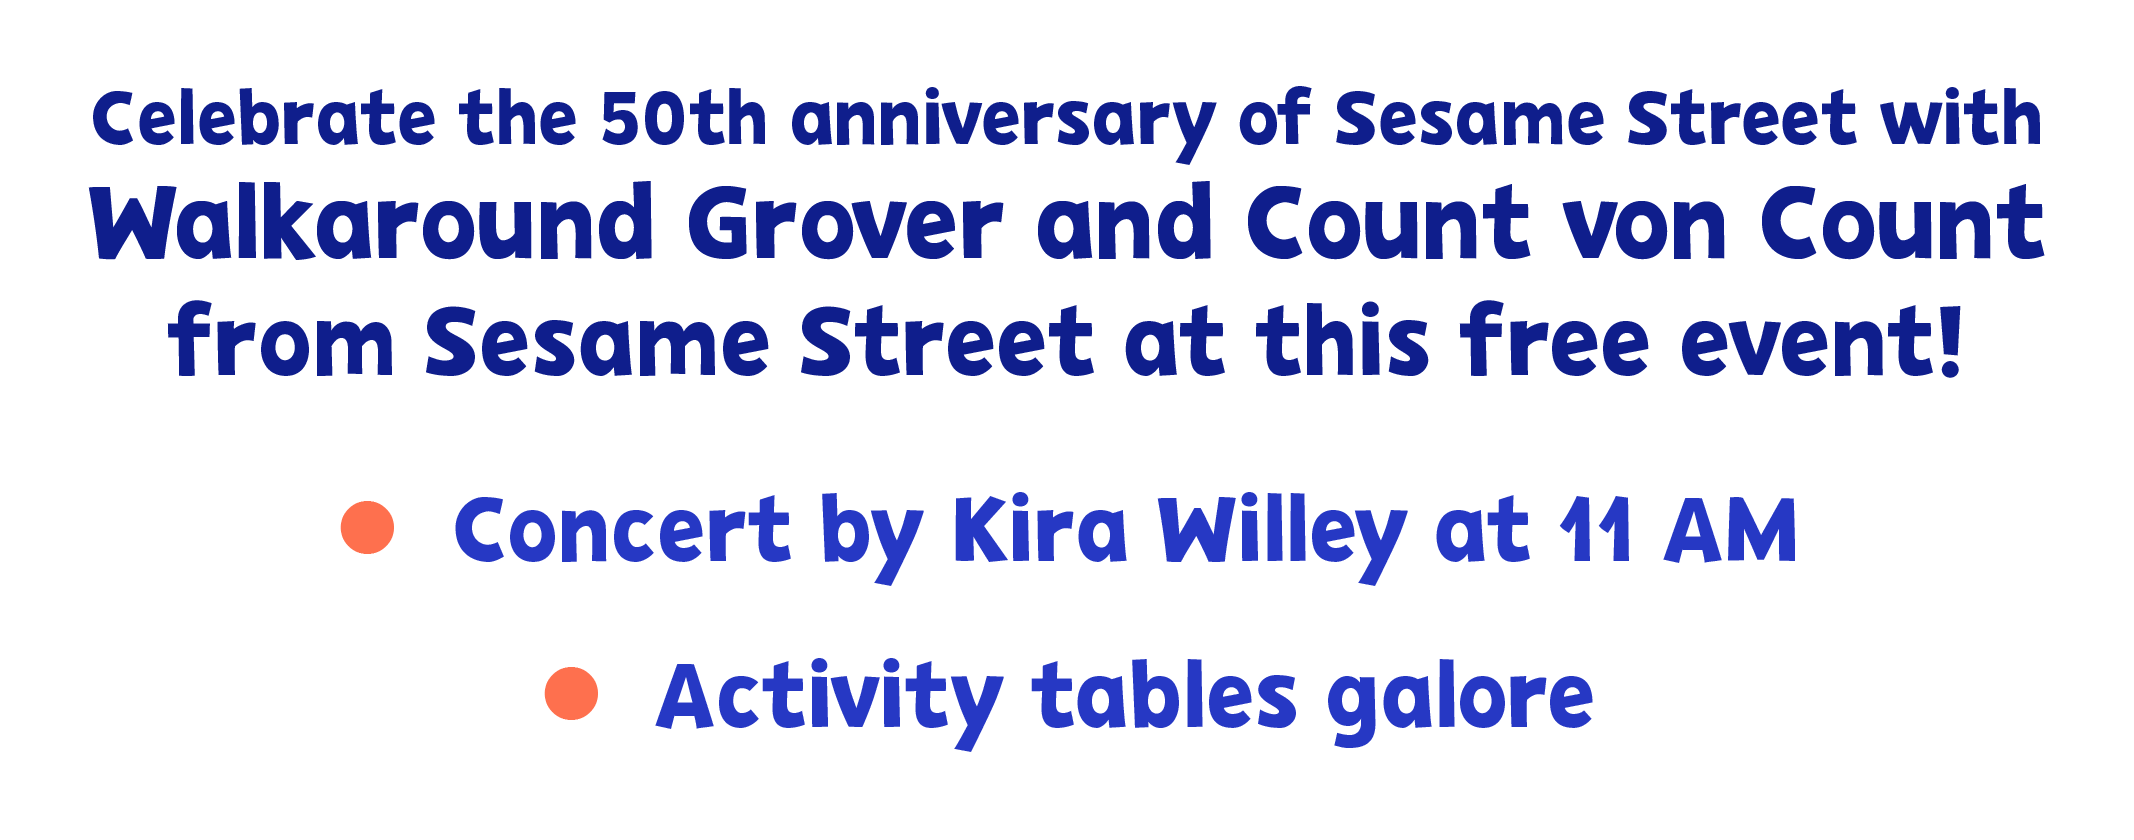 Celebrate the 50th anniversary of Sesame Street with Walkaround Grover and Count von County from Sesame Street at this free event! Concert by Kira Willey at 11AM and activity tables galore!